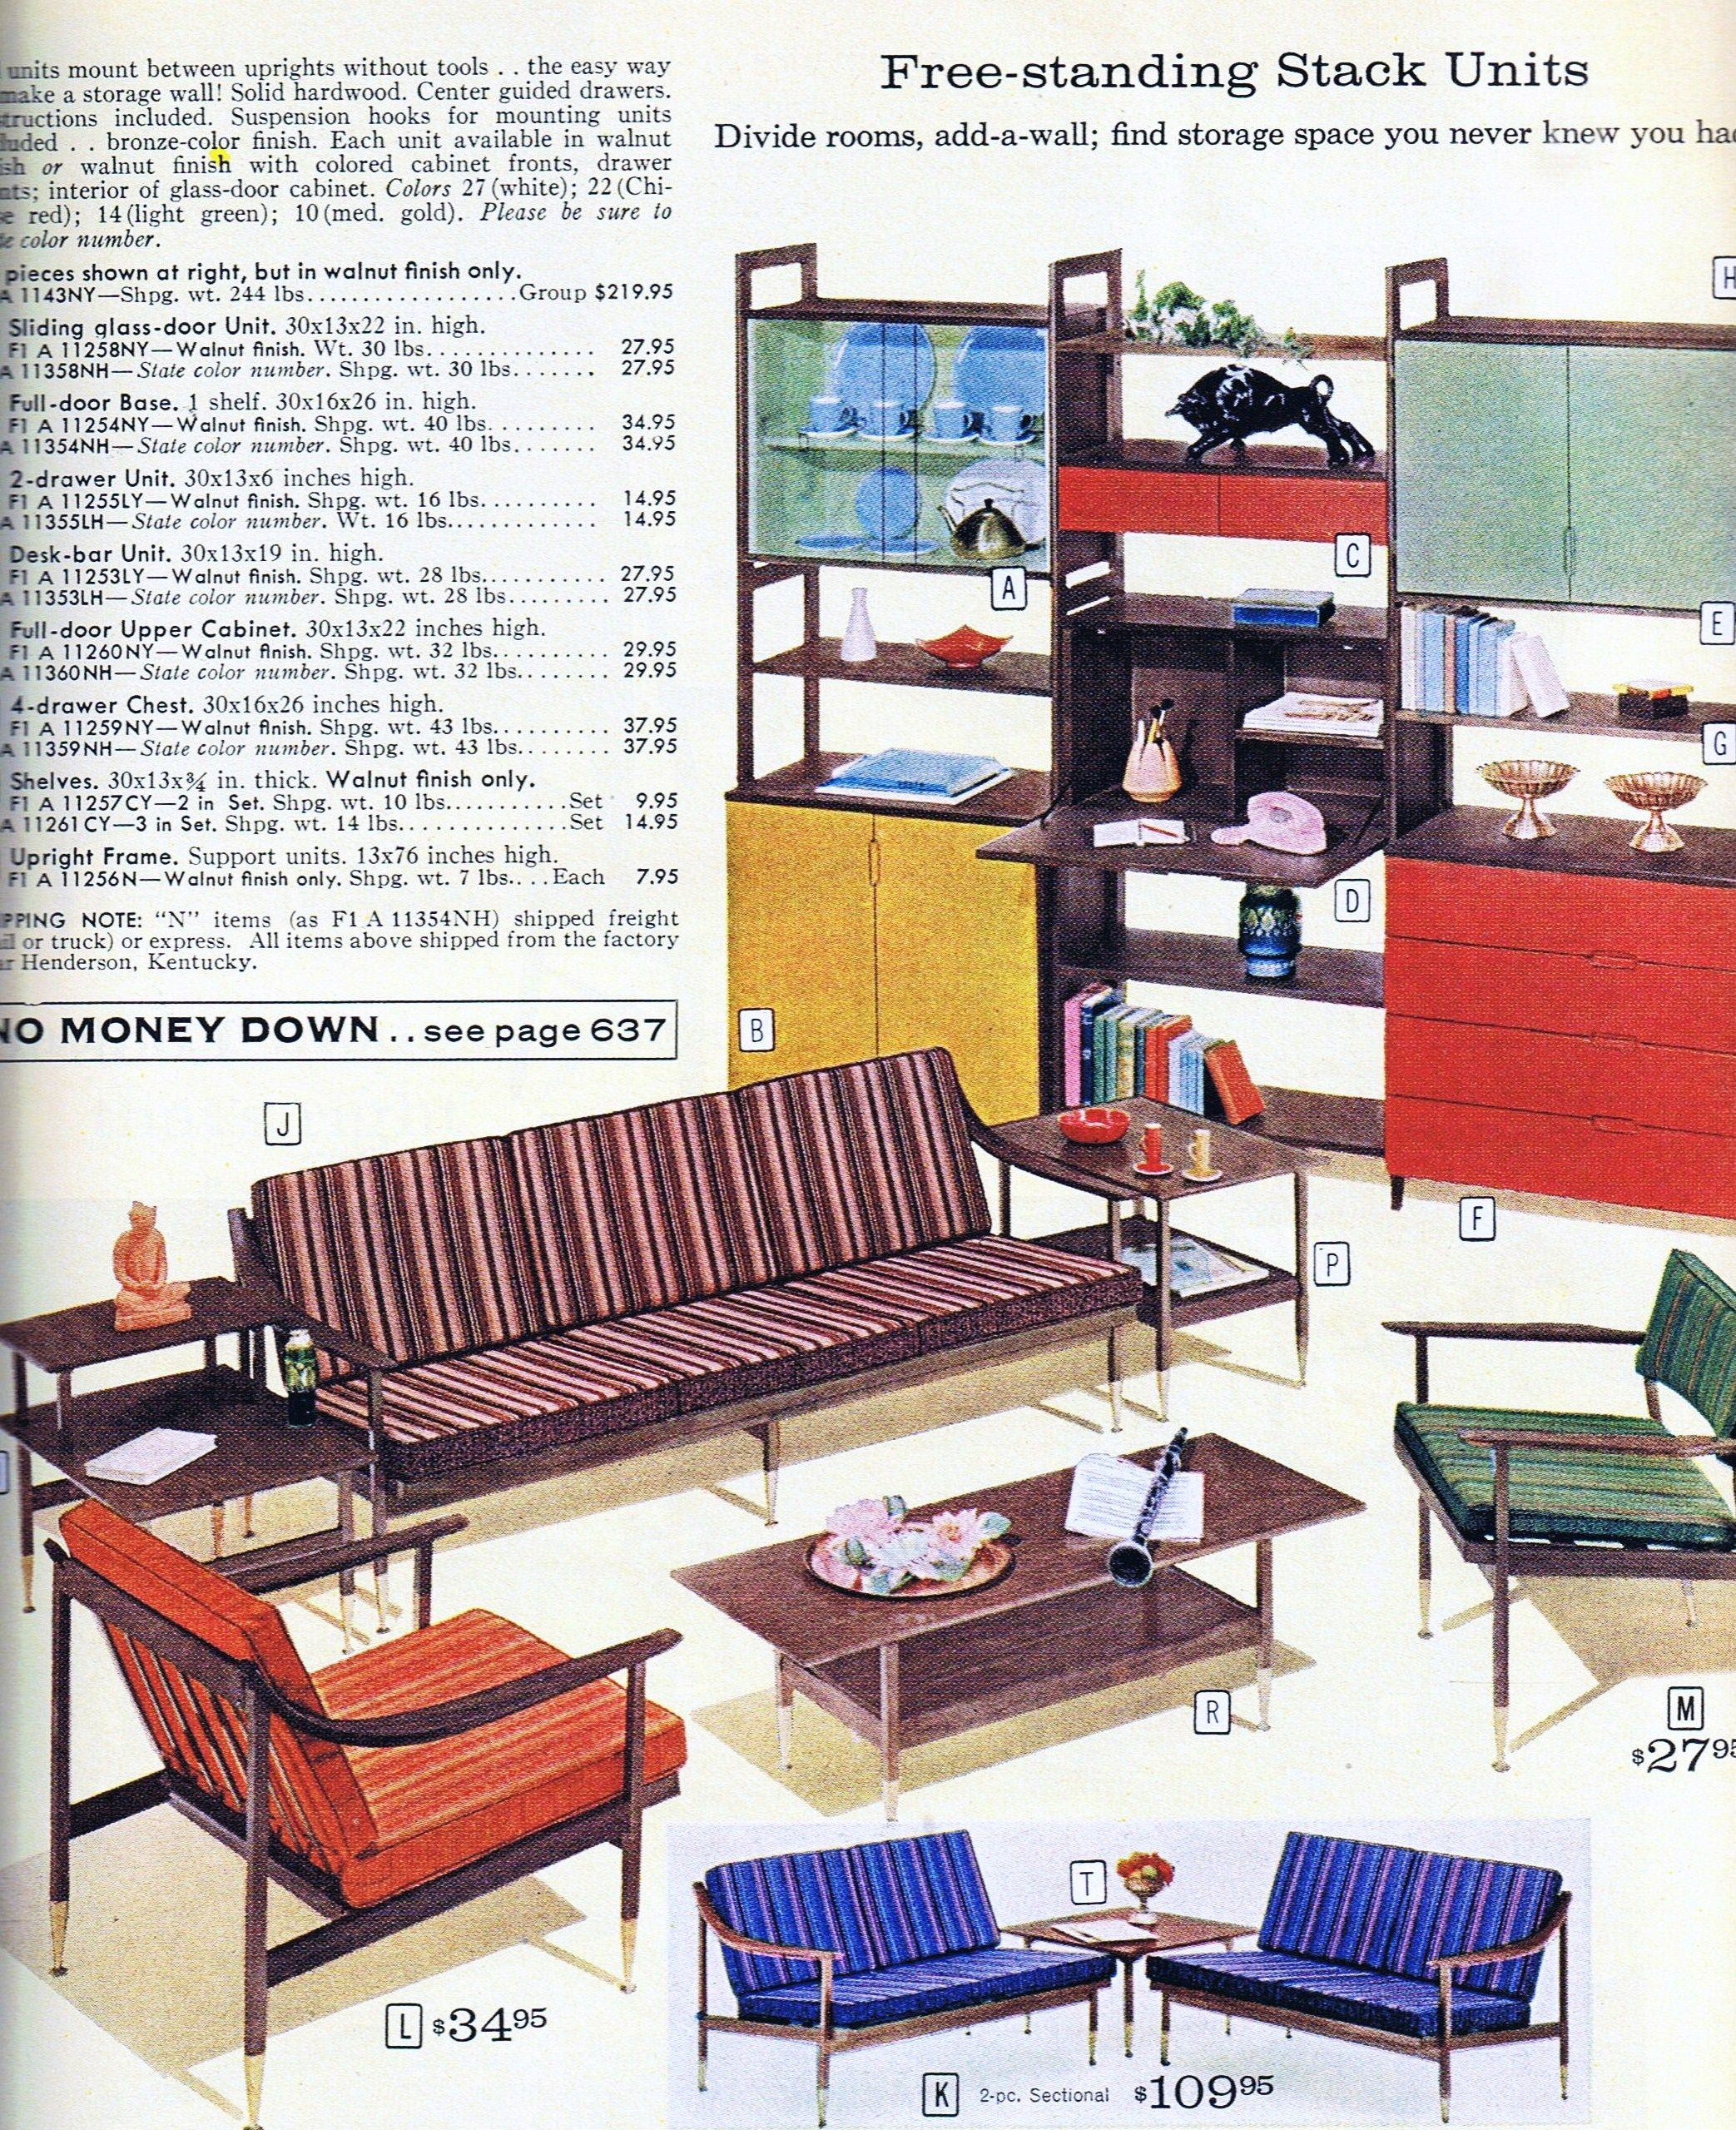 Sears Catalogue 1968 I Never Would Have Associated Sears With Danish Modern Mid Century Modern Interiors Bedroom Furniture Sets Mid Century Modern Design #sears #living #room #furniture